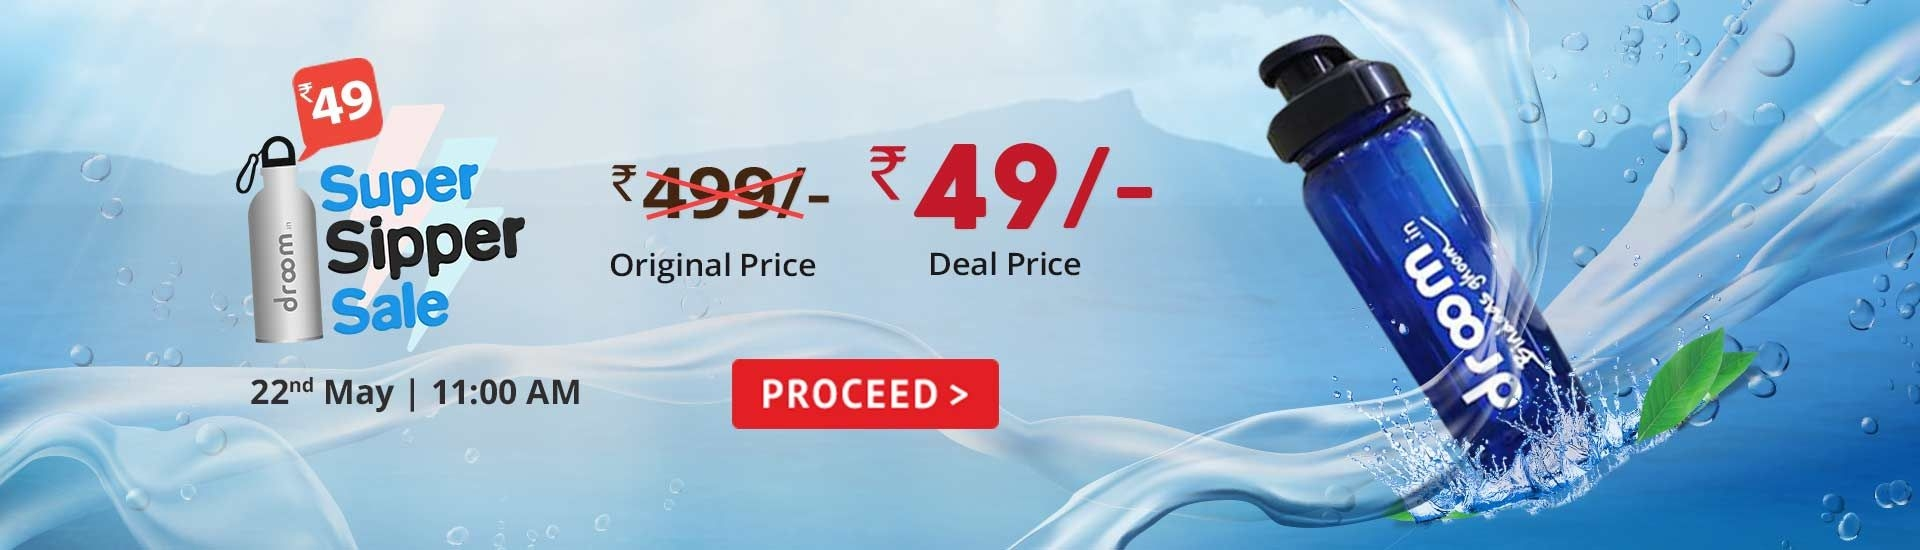 Droom - Super Sipper Sale At Rs.49 Only Worth Rs.499